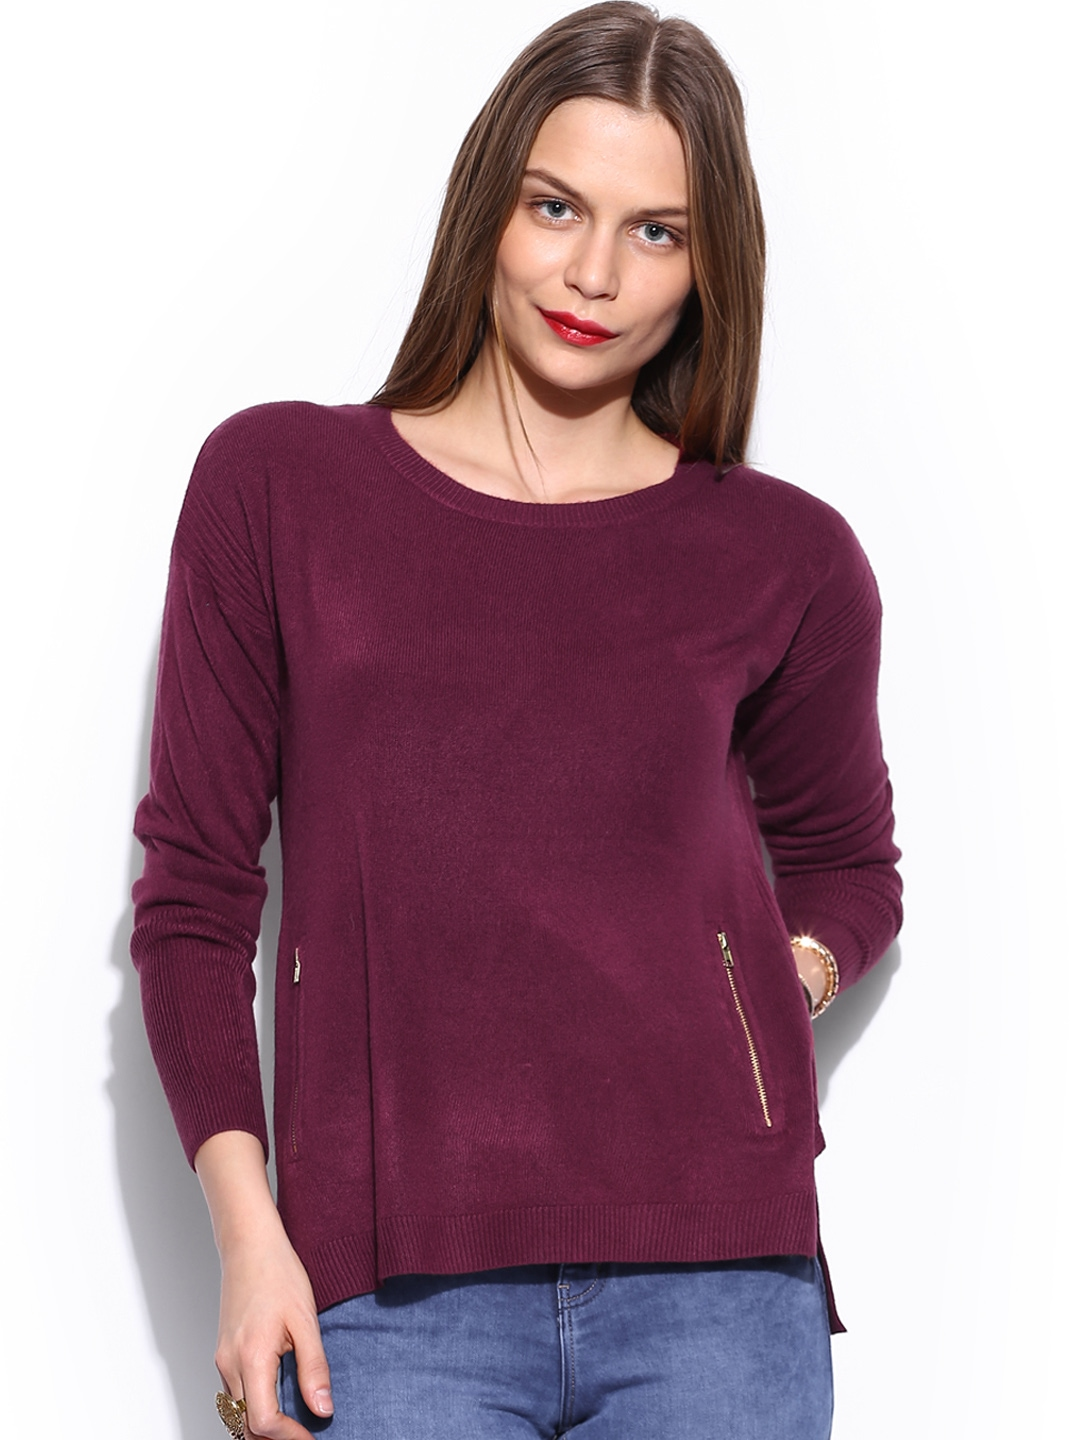 Find great deals on eBay for burgundy sweater. Shop with confidence.